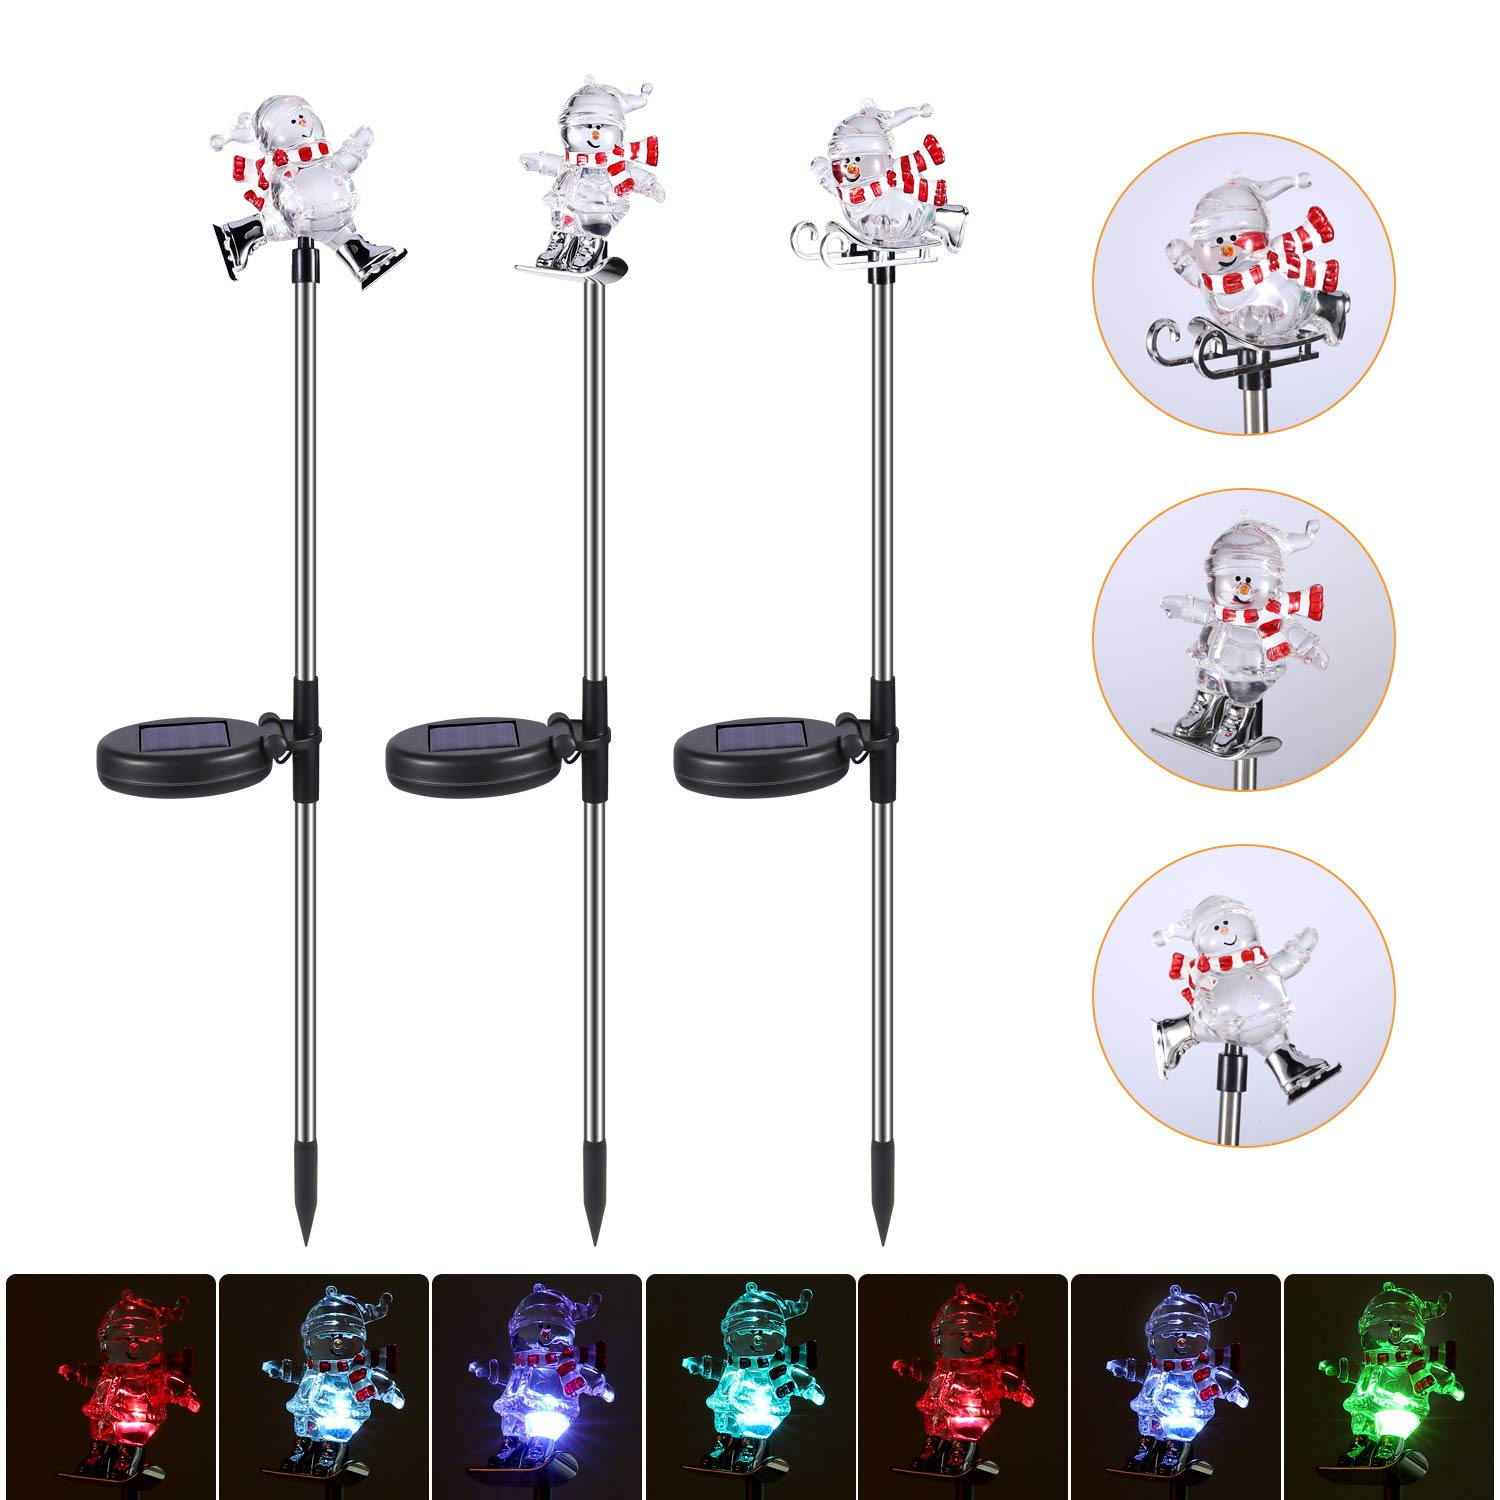 Solar Garden Stake Lights Waterproof Plastic with RGB Color Changing LED Decorative Light for Patio Lawn Holiday Decor 3 Pack Santa Claus 3 PCS Solar Christmas Santa Claus Decorations Outdoor